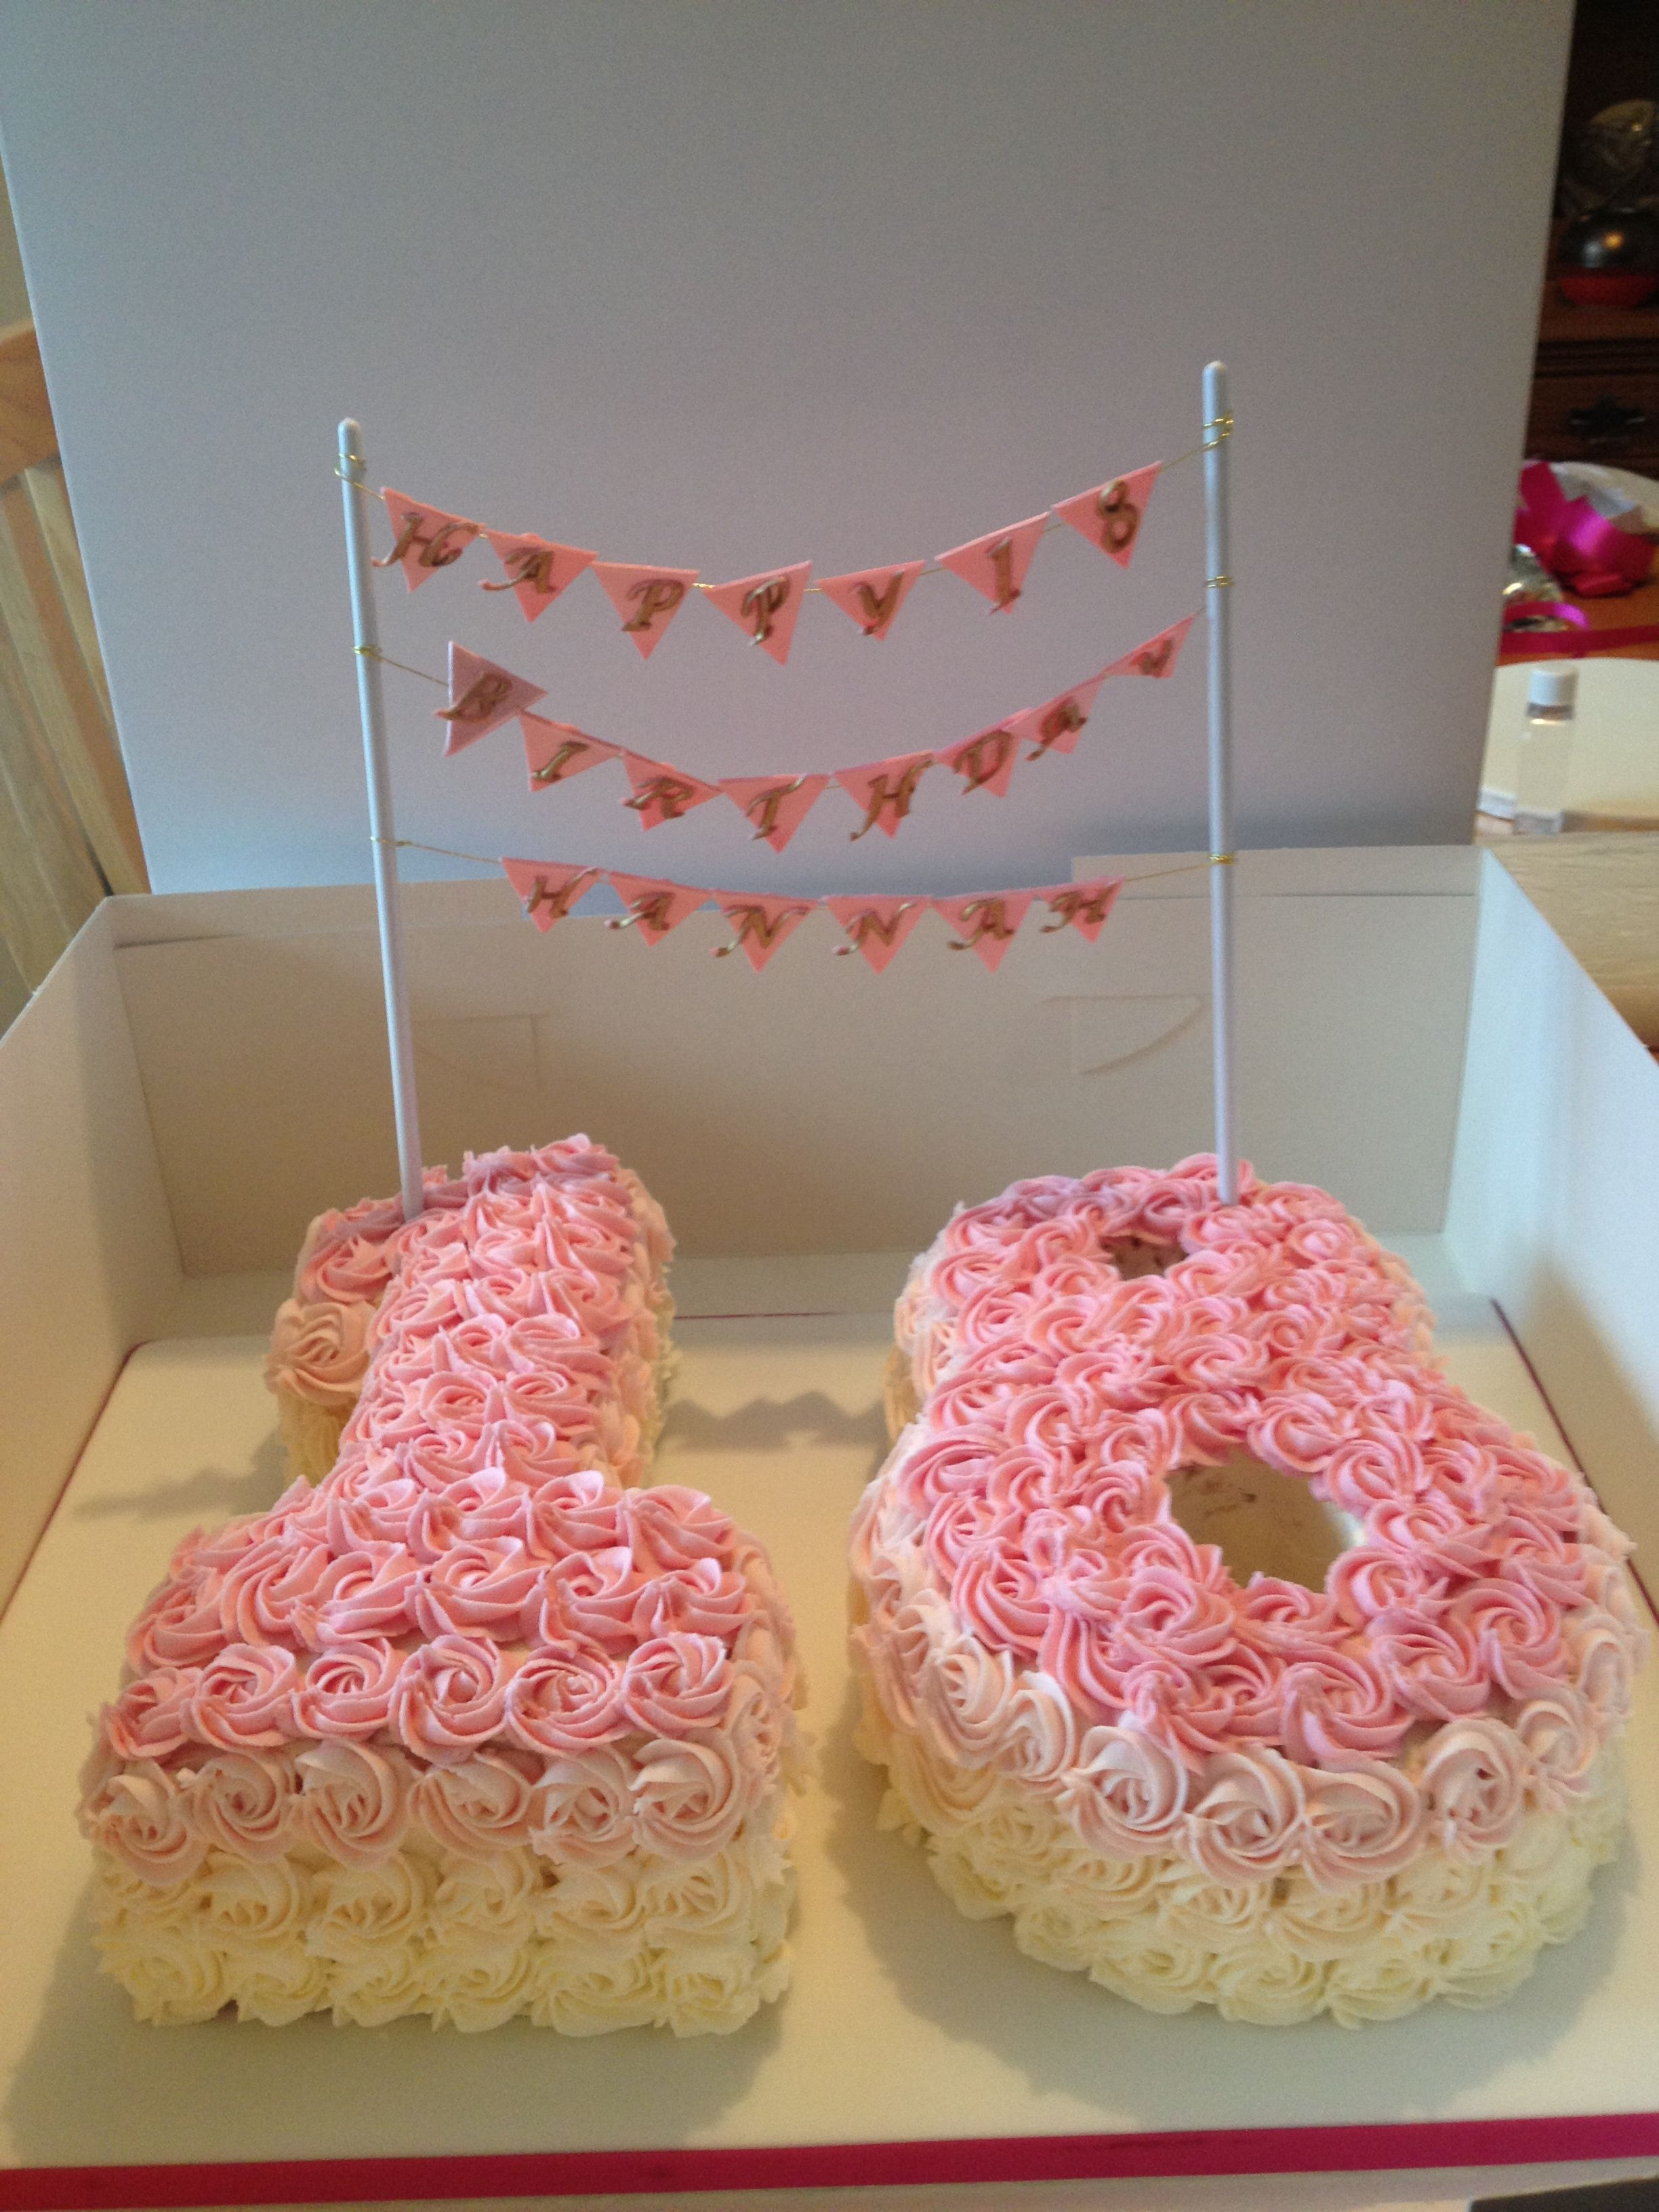 Pinke Küche Deko 18th Birthday Ombré Rose Cake Cute Without The Banner